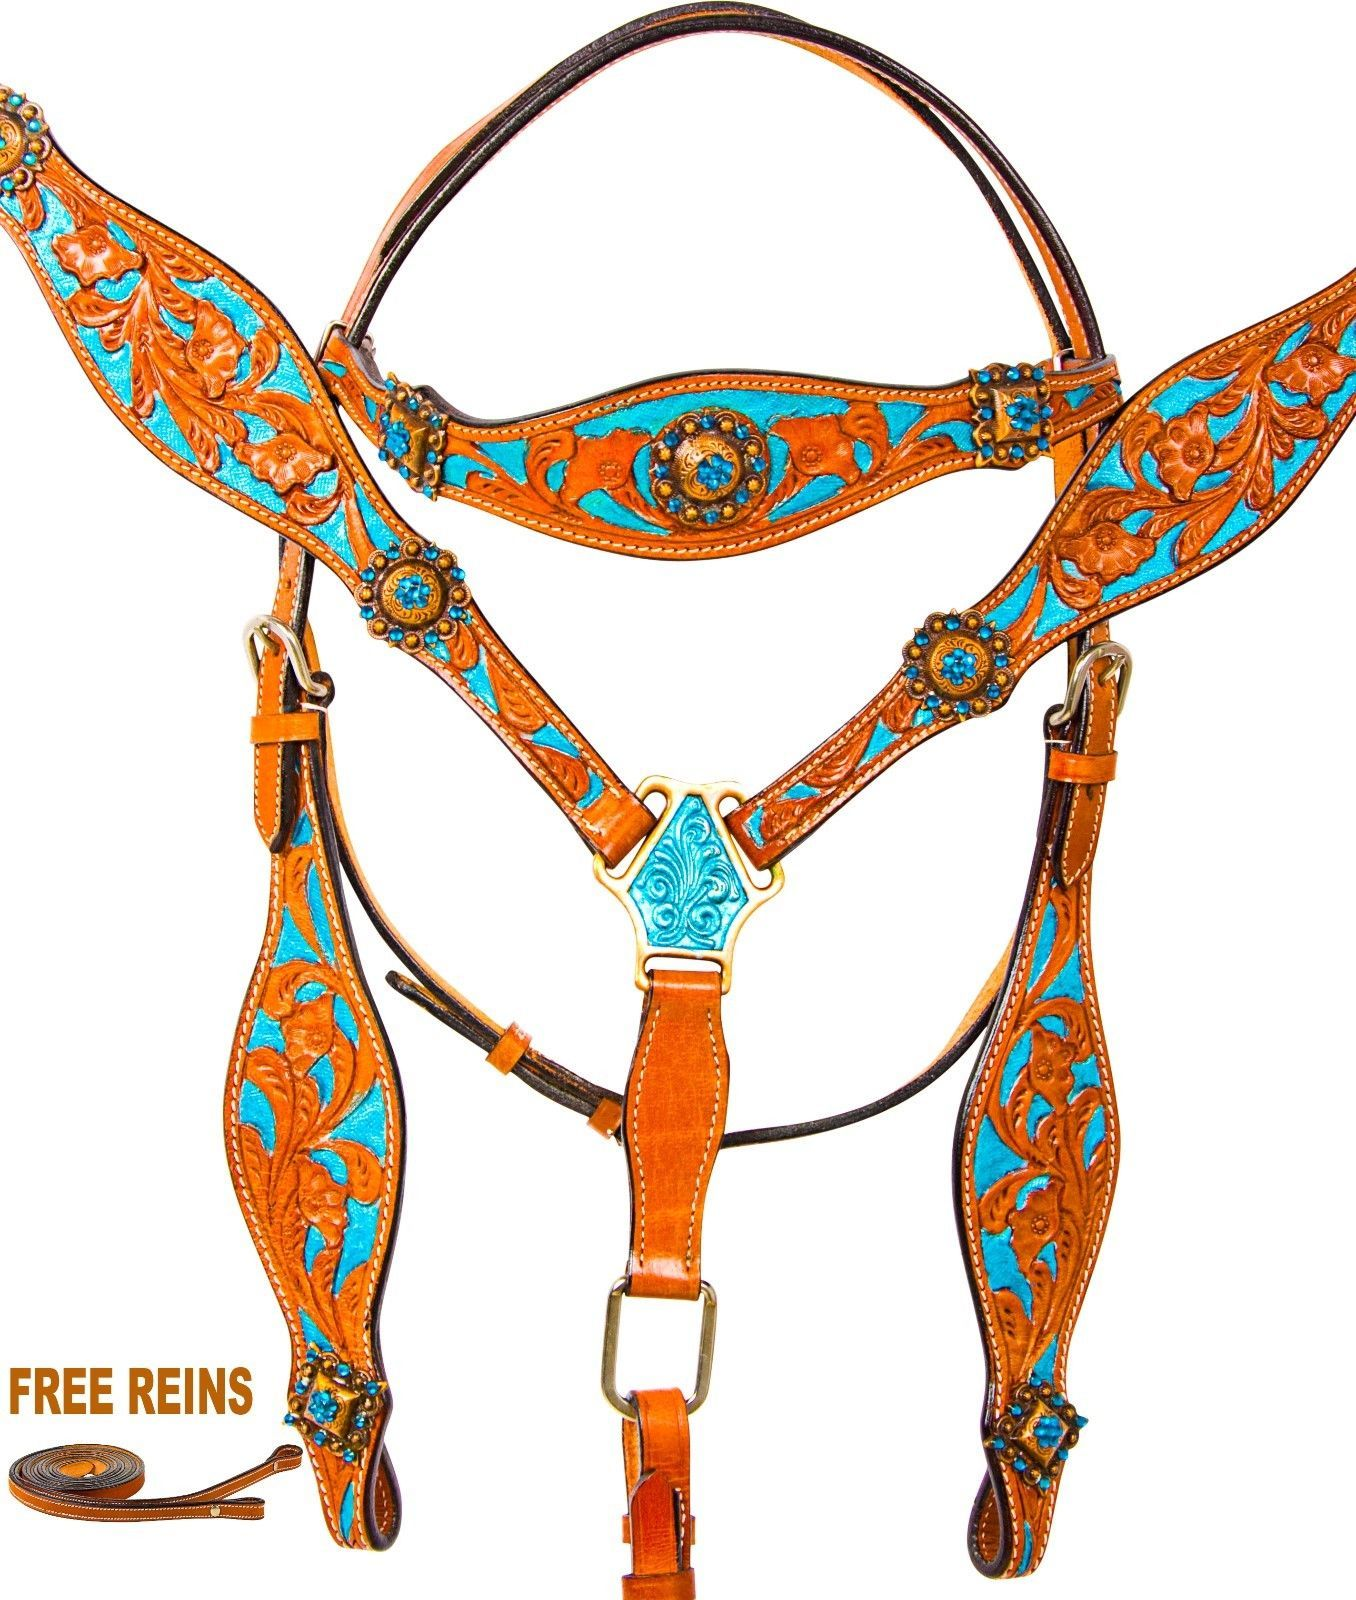 CUSTOM TURQUOISE BLING CRYSTAL WESTERN LEATHER HEADSTALL BRIDLE TACK SET LOT